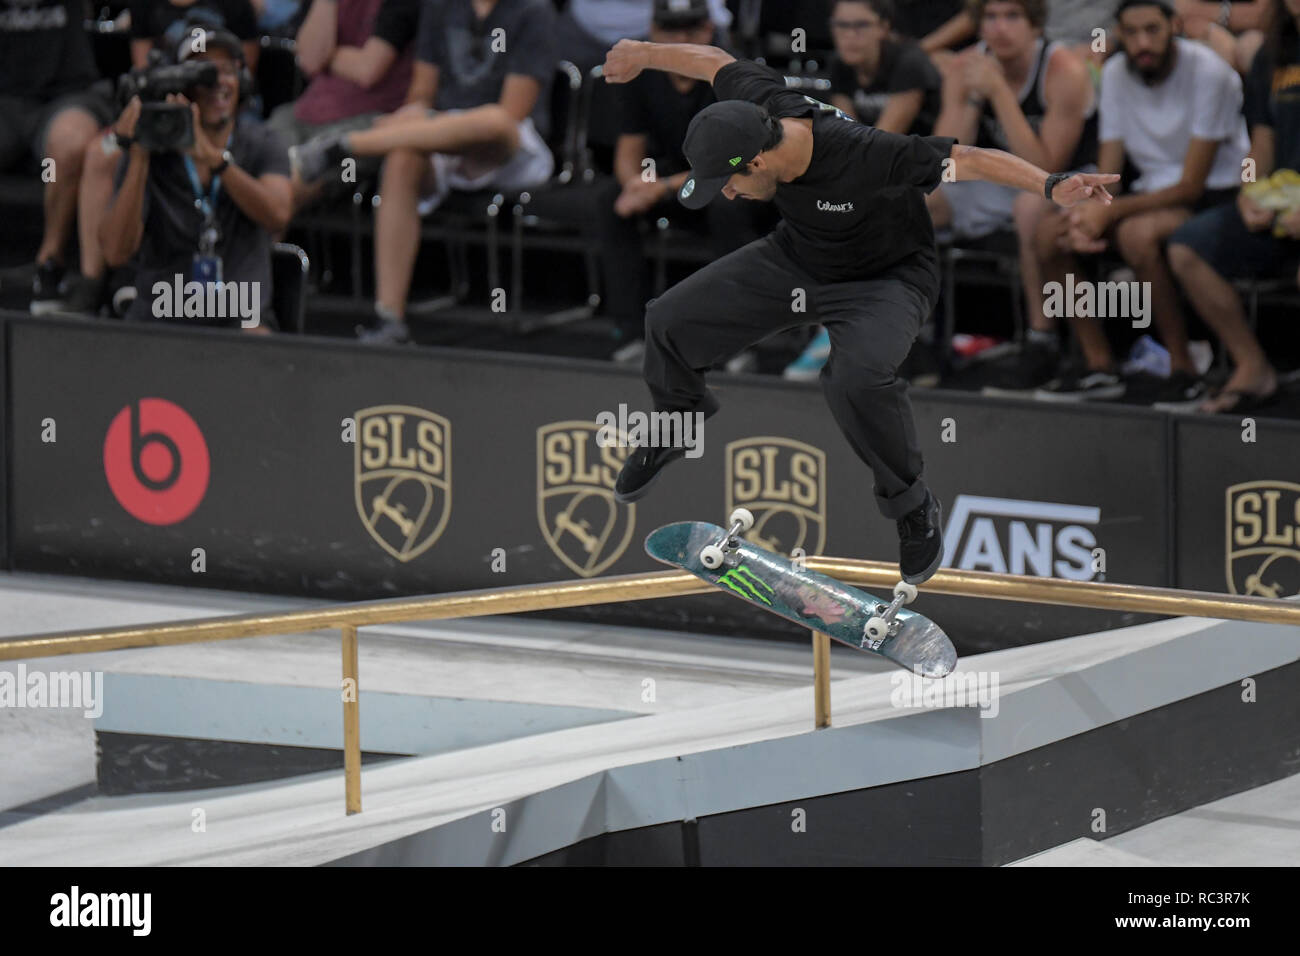 RJ - Rio de Janeiro - 01/13/2019 - World Championship SLS World Championship in Rio de Janeiro - Finals - Kelvin Hoefler competitor performs maneuver during the men's final of the Brazilian stage of the Street League World Championship, held at Arena Carioca 1, Barra da Tijuca West Zone of Rio de Janeiro. Rio receives until Sunday stage of the Street League, the largest Skateboard Street championship in the world. The sport gained importance in the national sports arena after it became an Olympic sport. Photo: Thiago Ribeiro / AGIF - Stock Image